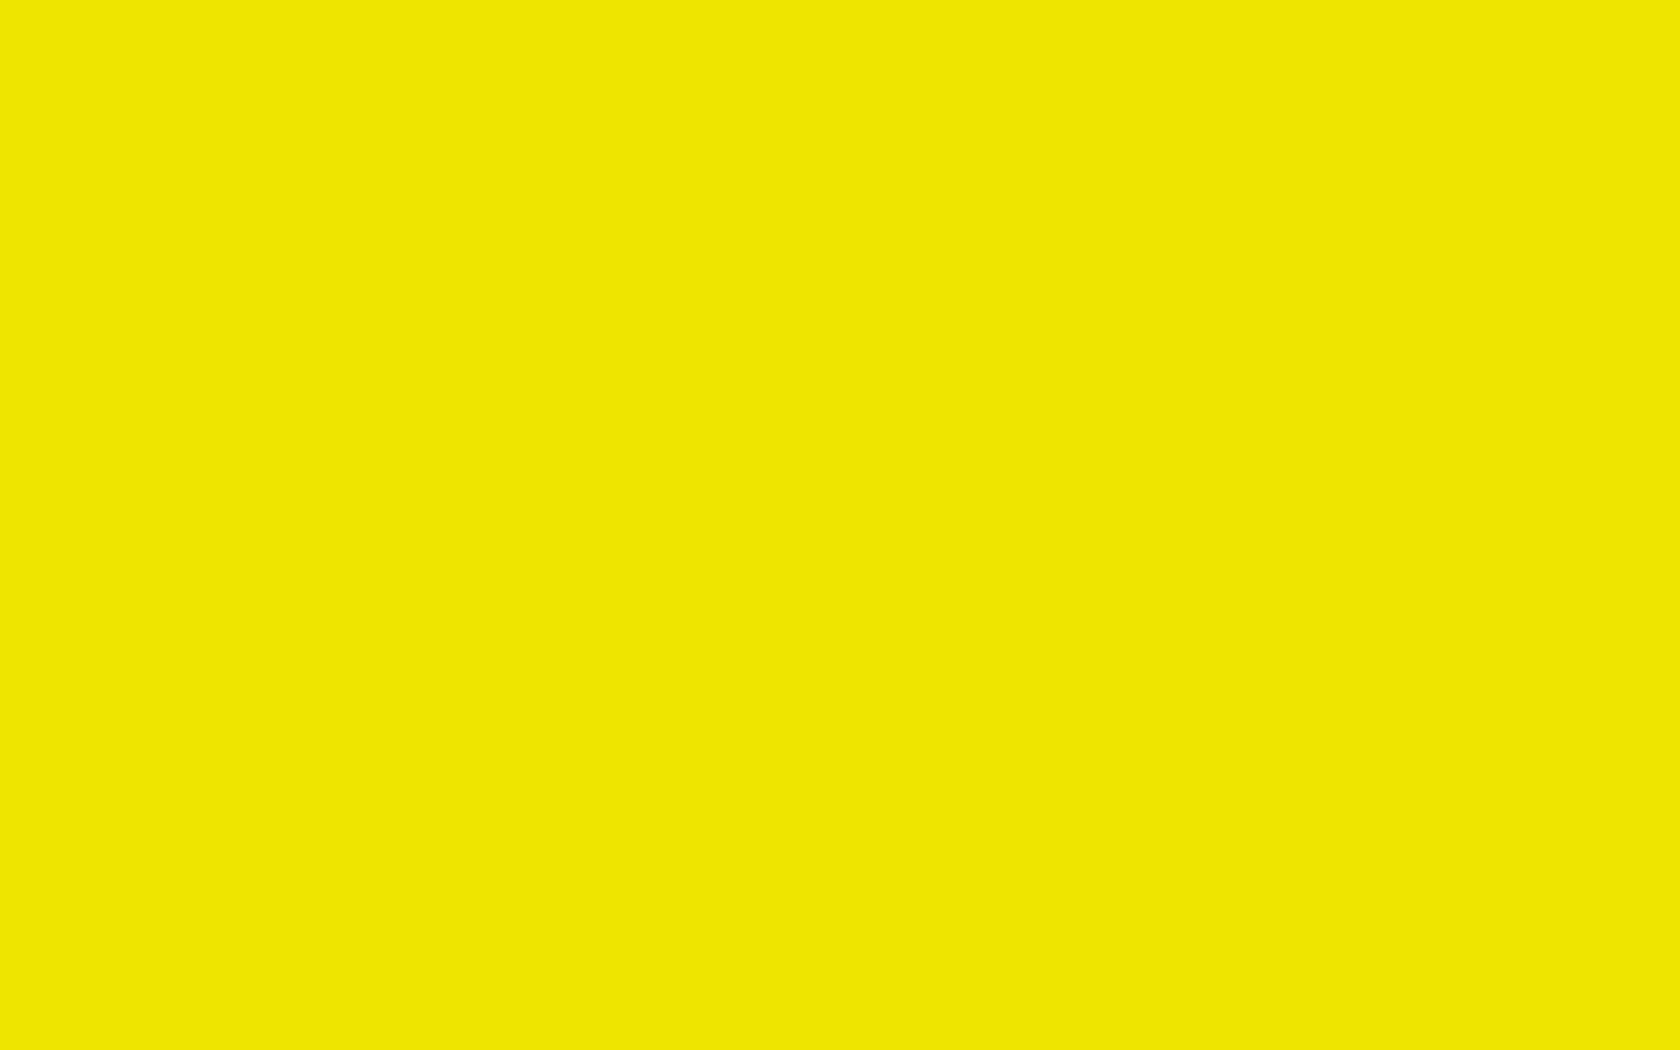 1680x1050 Titanium Yellow Solid Color Background